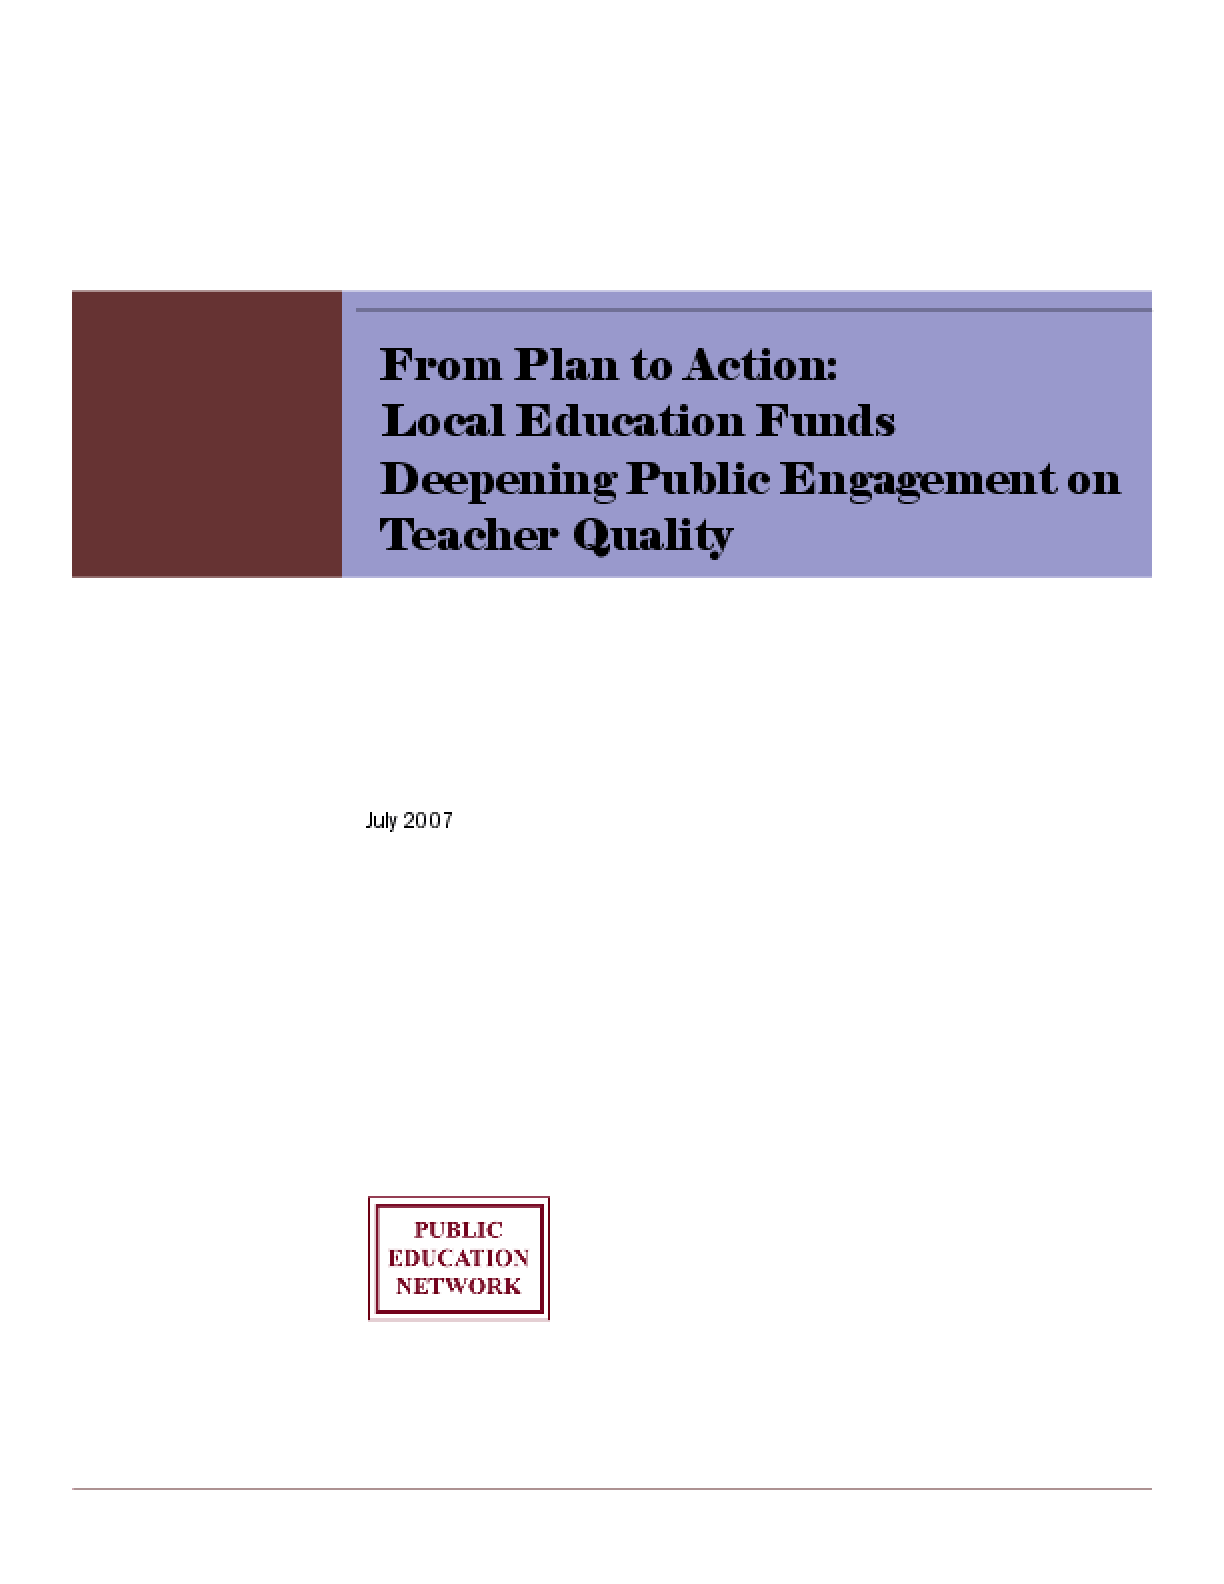 From Plan to Action: Local Education Funds Deepening Public Engagement on Teacher Quality